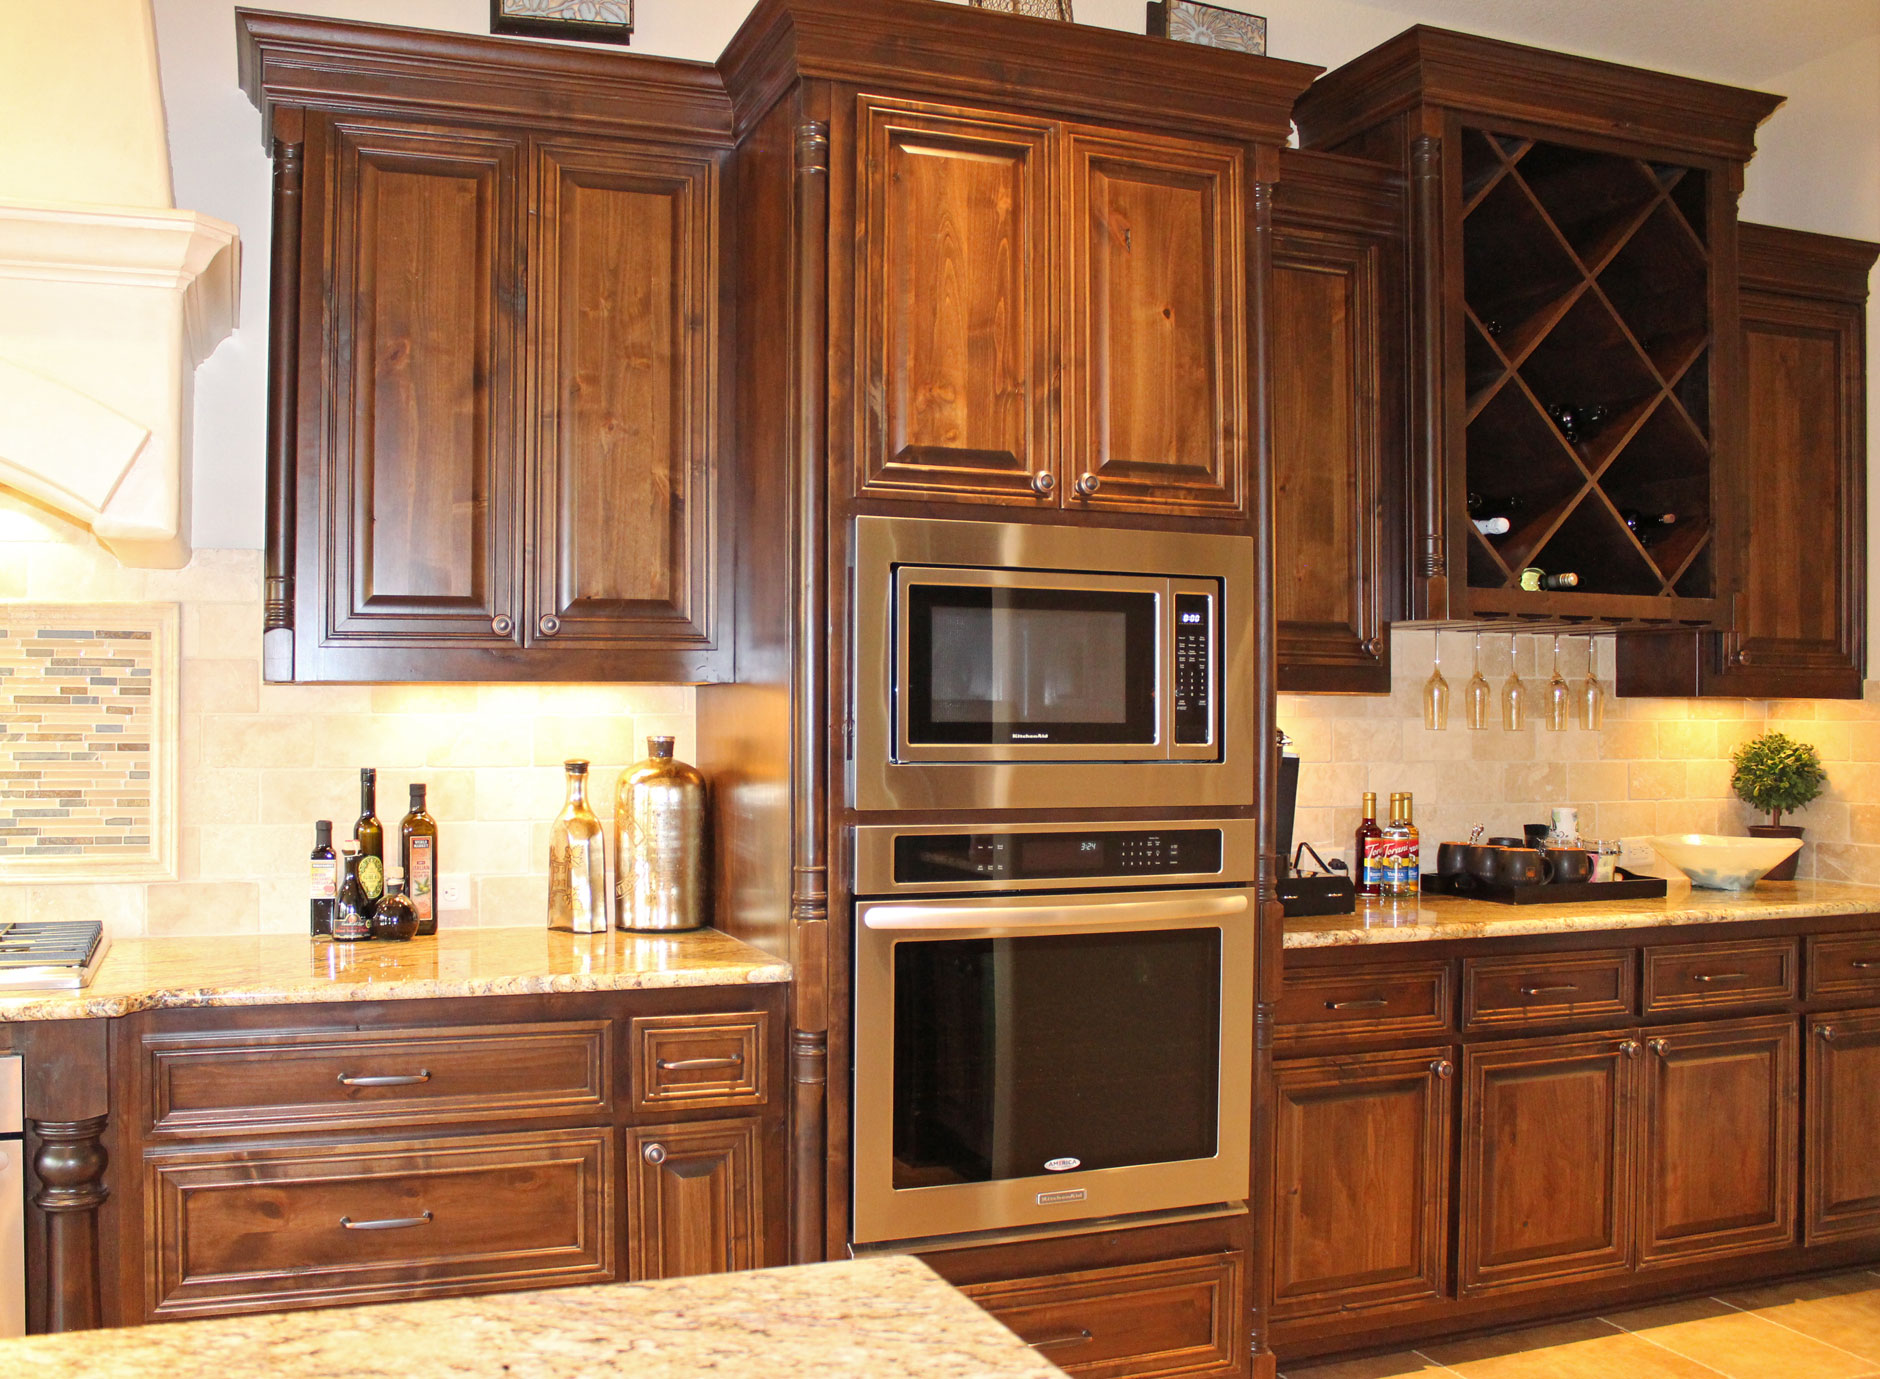 Kitchen 039b - Burrows Cabinets - central Texas builder ...